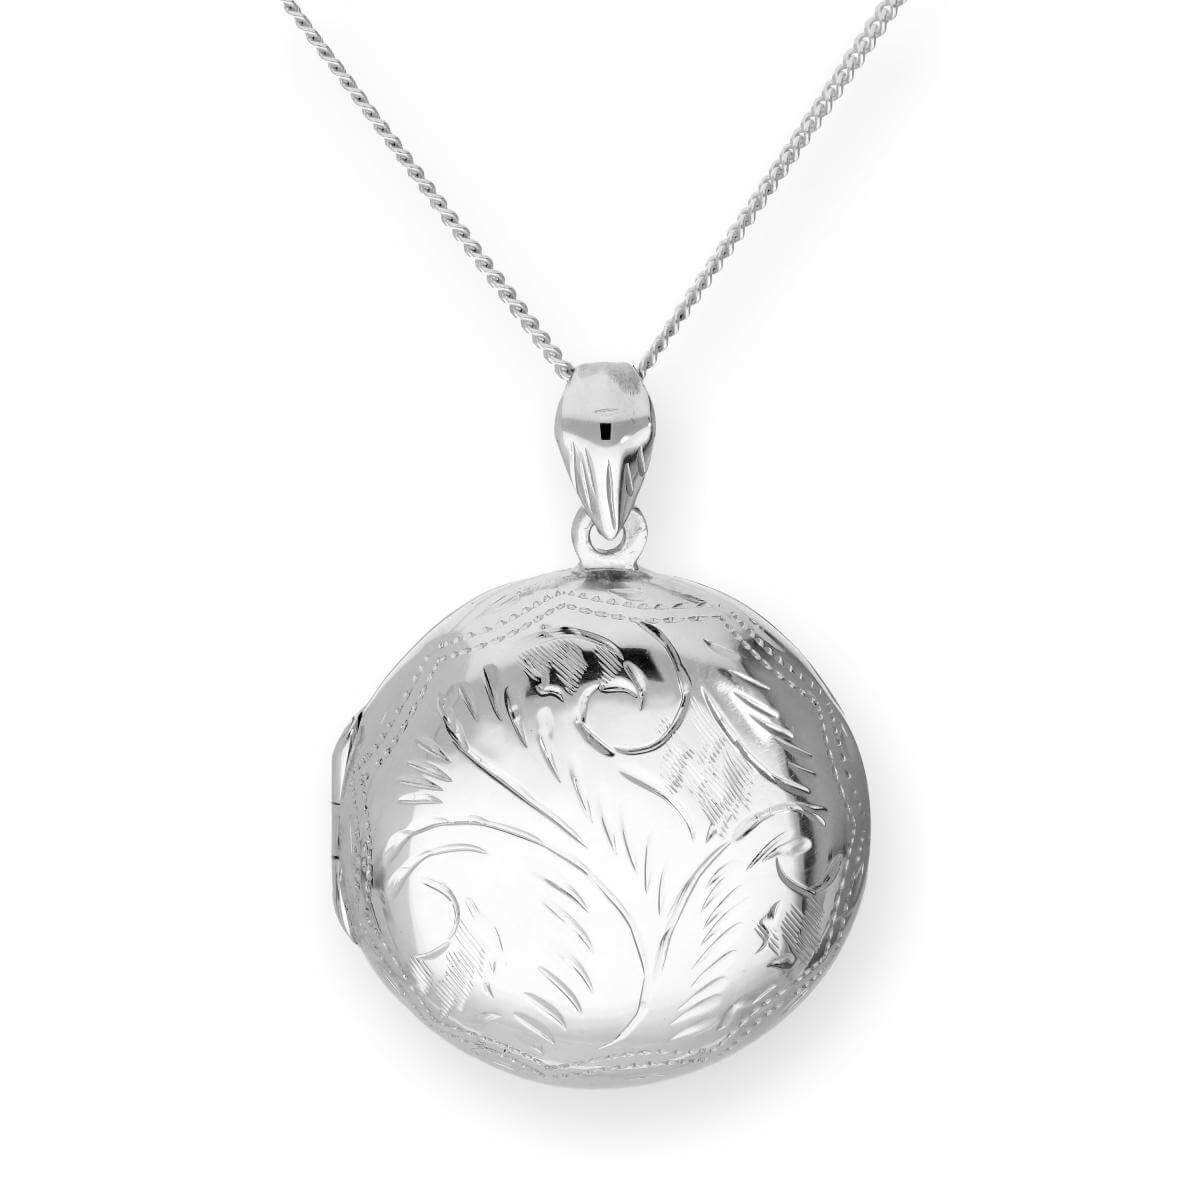 Large Sterling Silver Engraved Round Locket on Chain 16 - 24 Inches